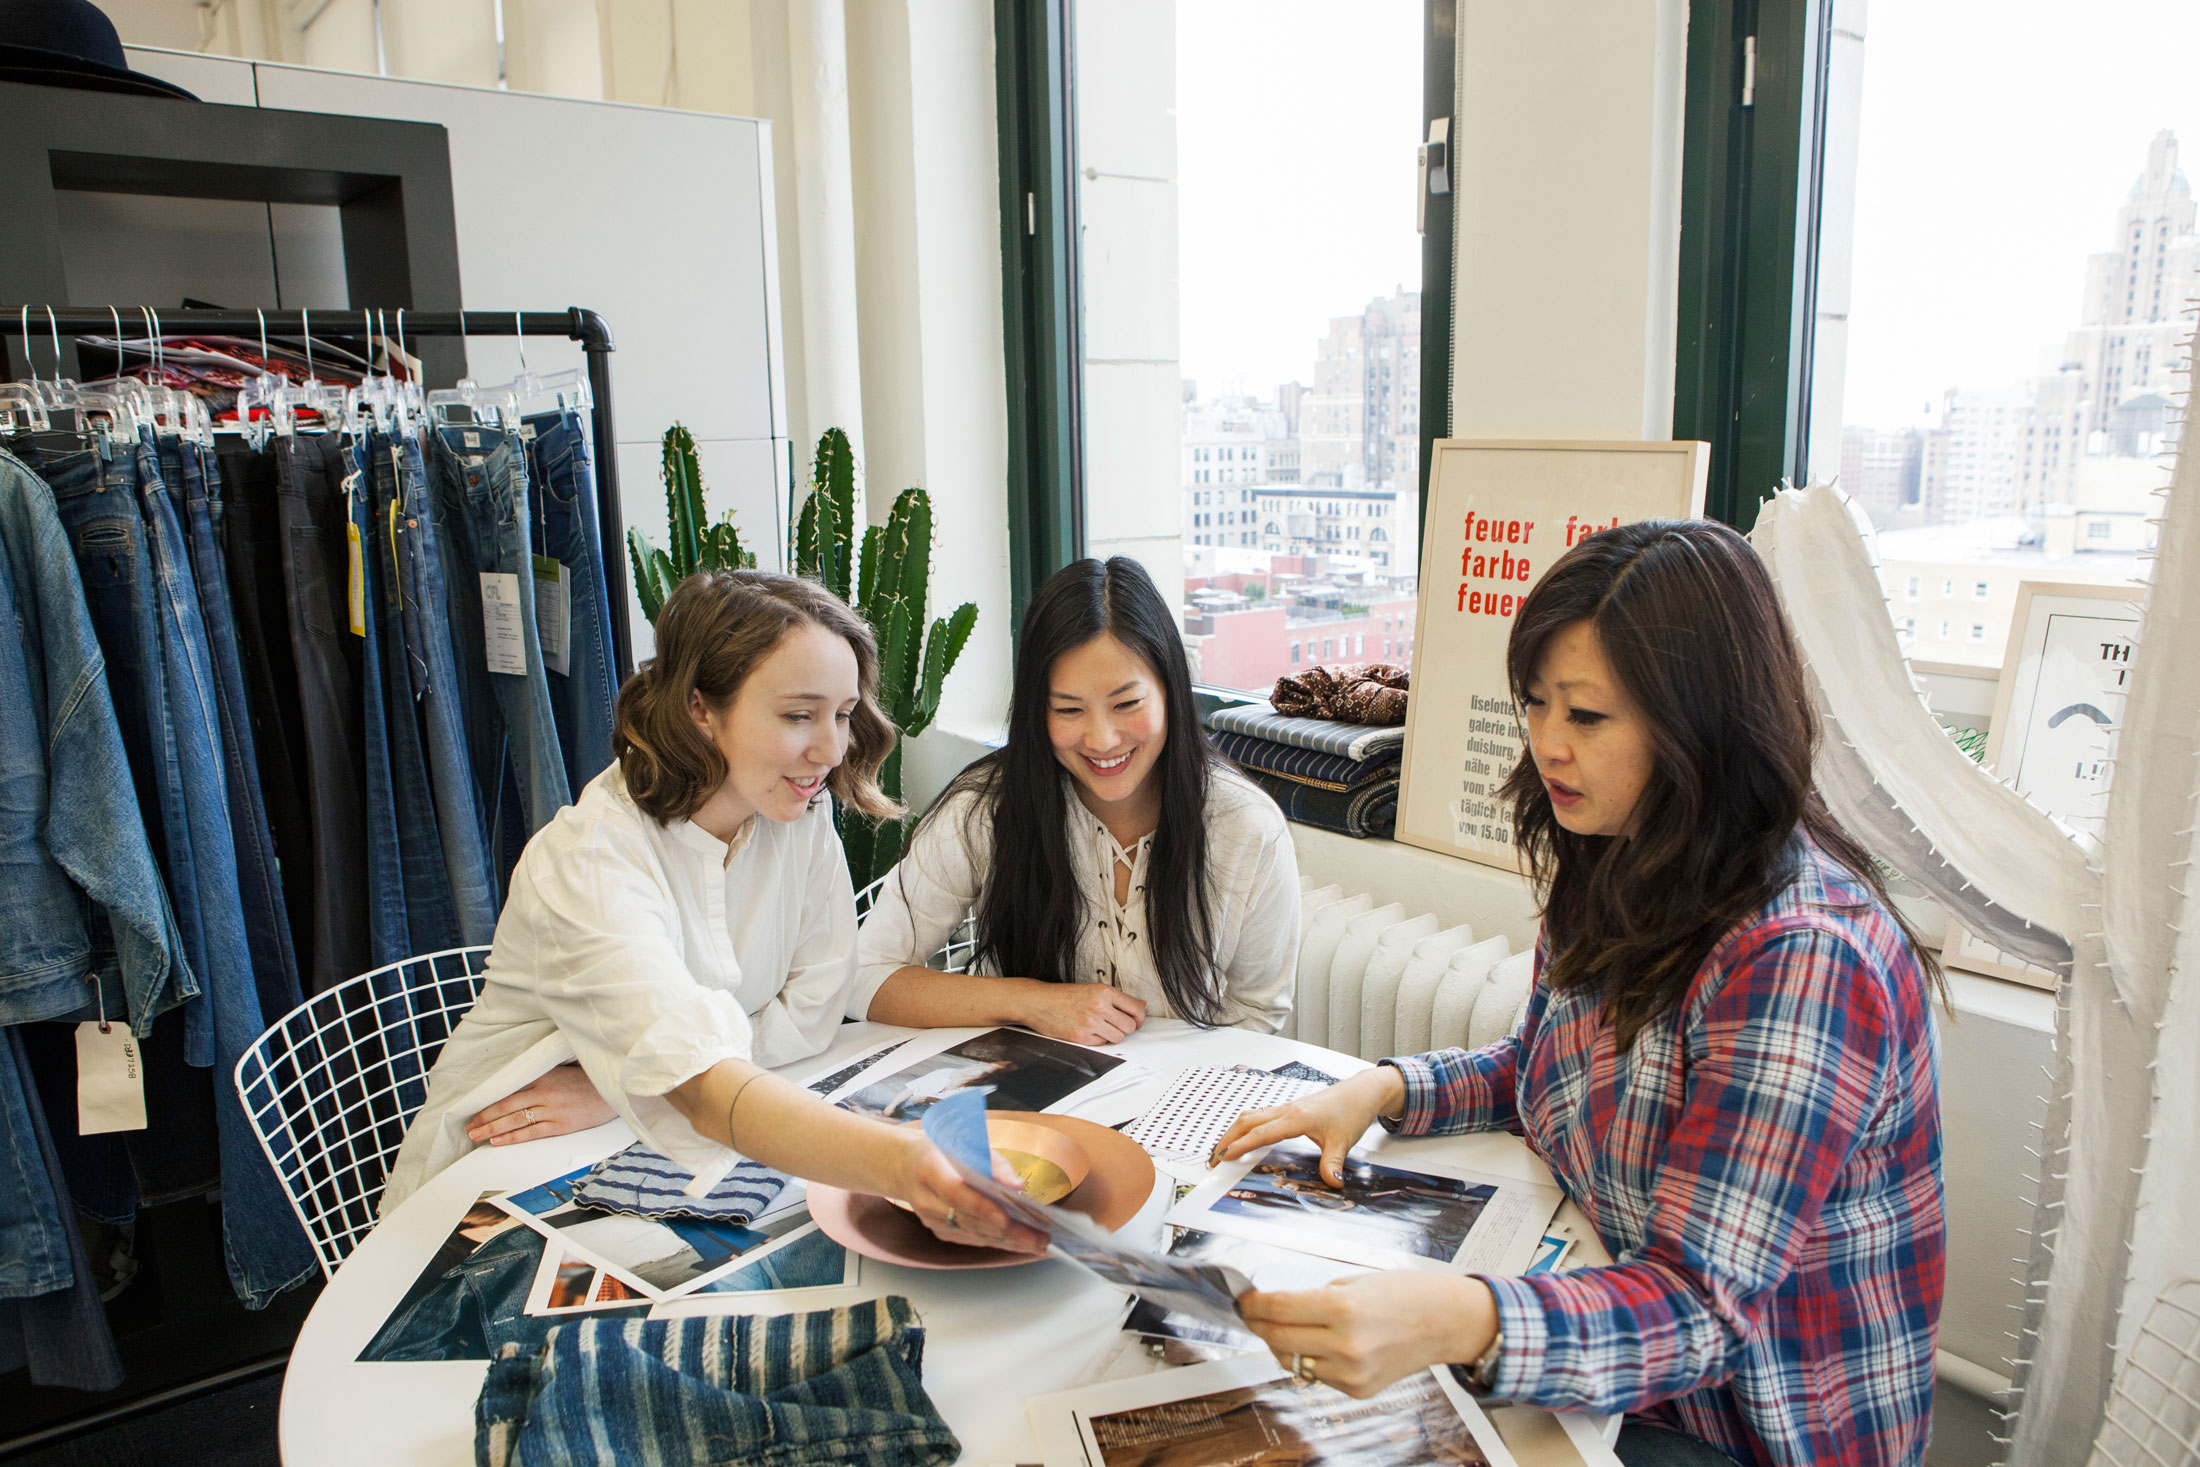 """""""We have our finger on the pulse of what's going on in denim,"""" head of denim design, Mary Pierson, says. """"That's really vital to being on tom of what's coming and how to approach it.""""(Photo: Katherine Wolkoff/Surface)"""